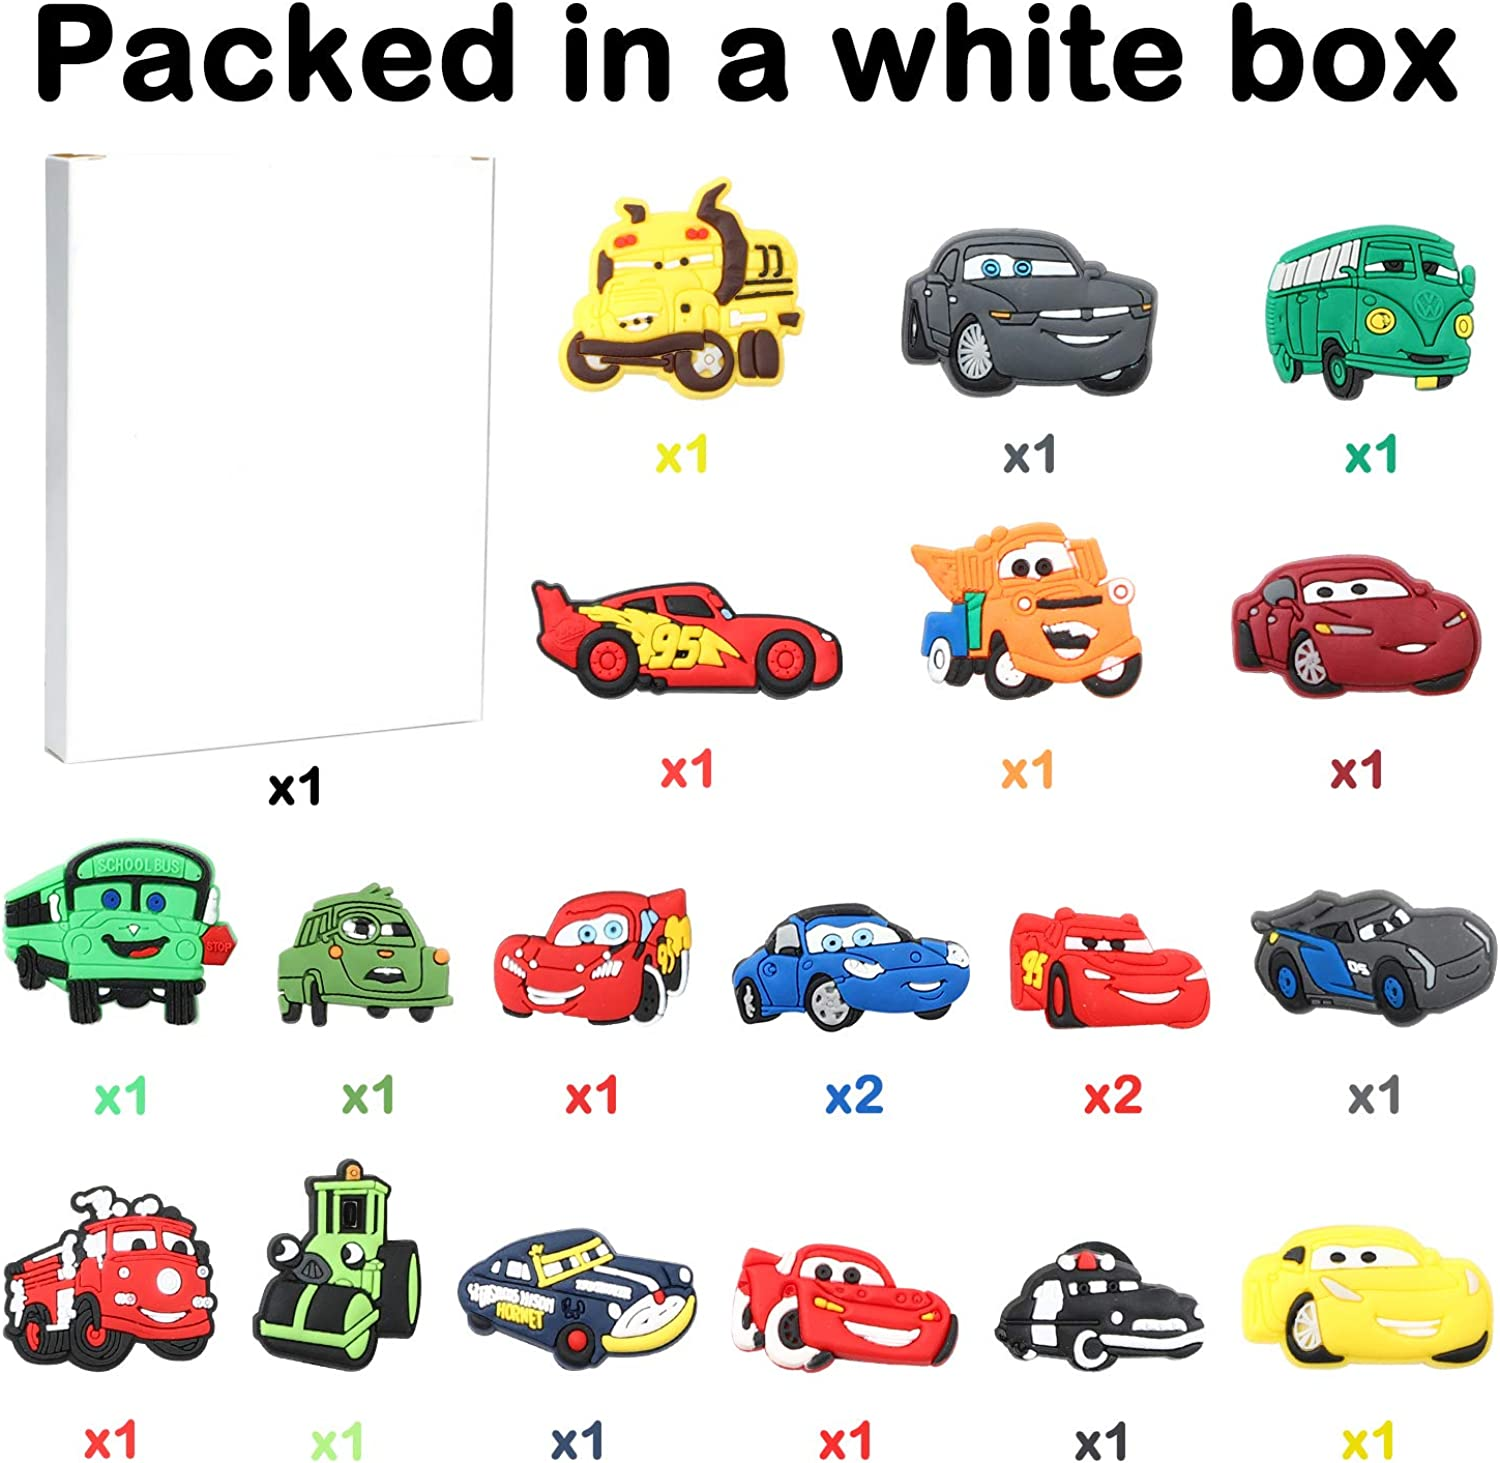 CY2SIDE 20PCS Race Car Shoe Charm for Crocs Cartoon Bracelet Wristband Charms for Kids B-day Gift Treasure Toy for Party Racing Car Shoe Decoration Charm for Kids Clogs Clog Decor for Boys Slip-On